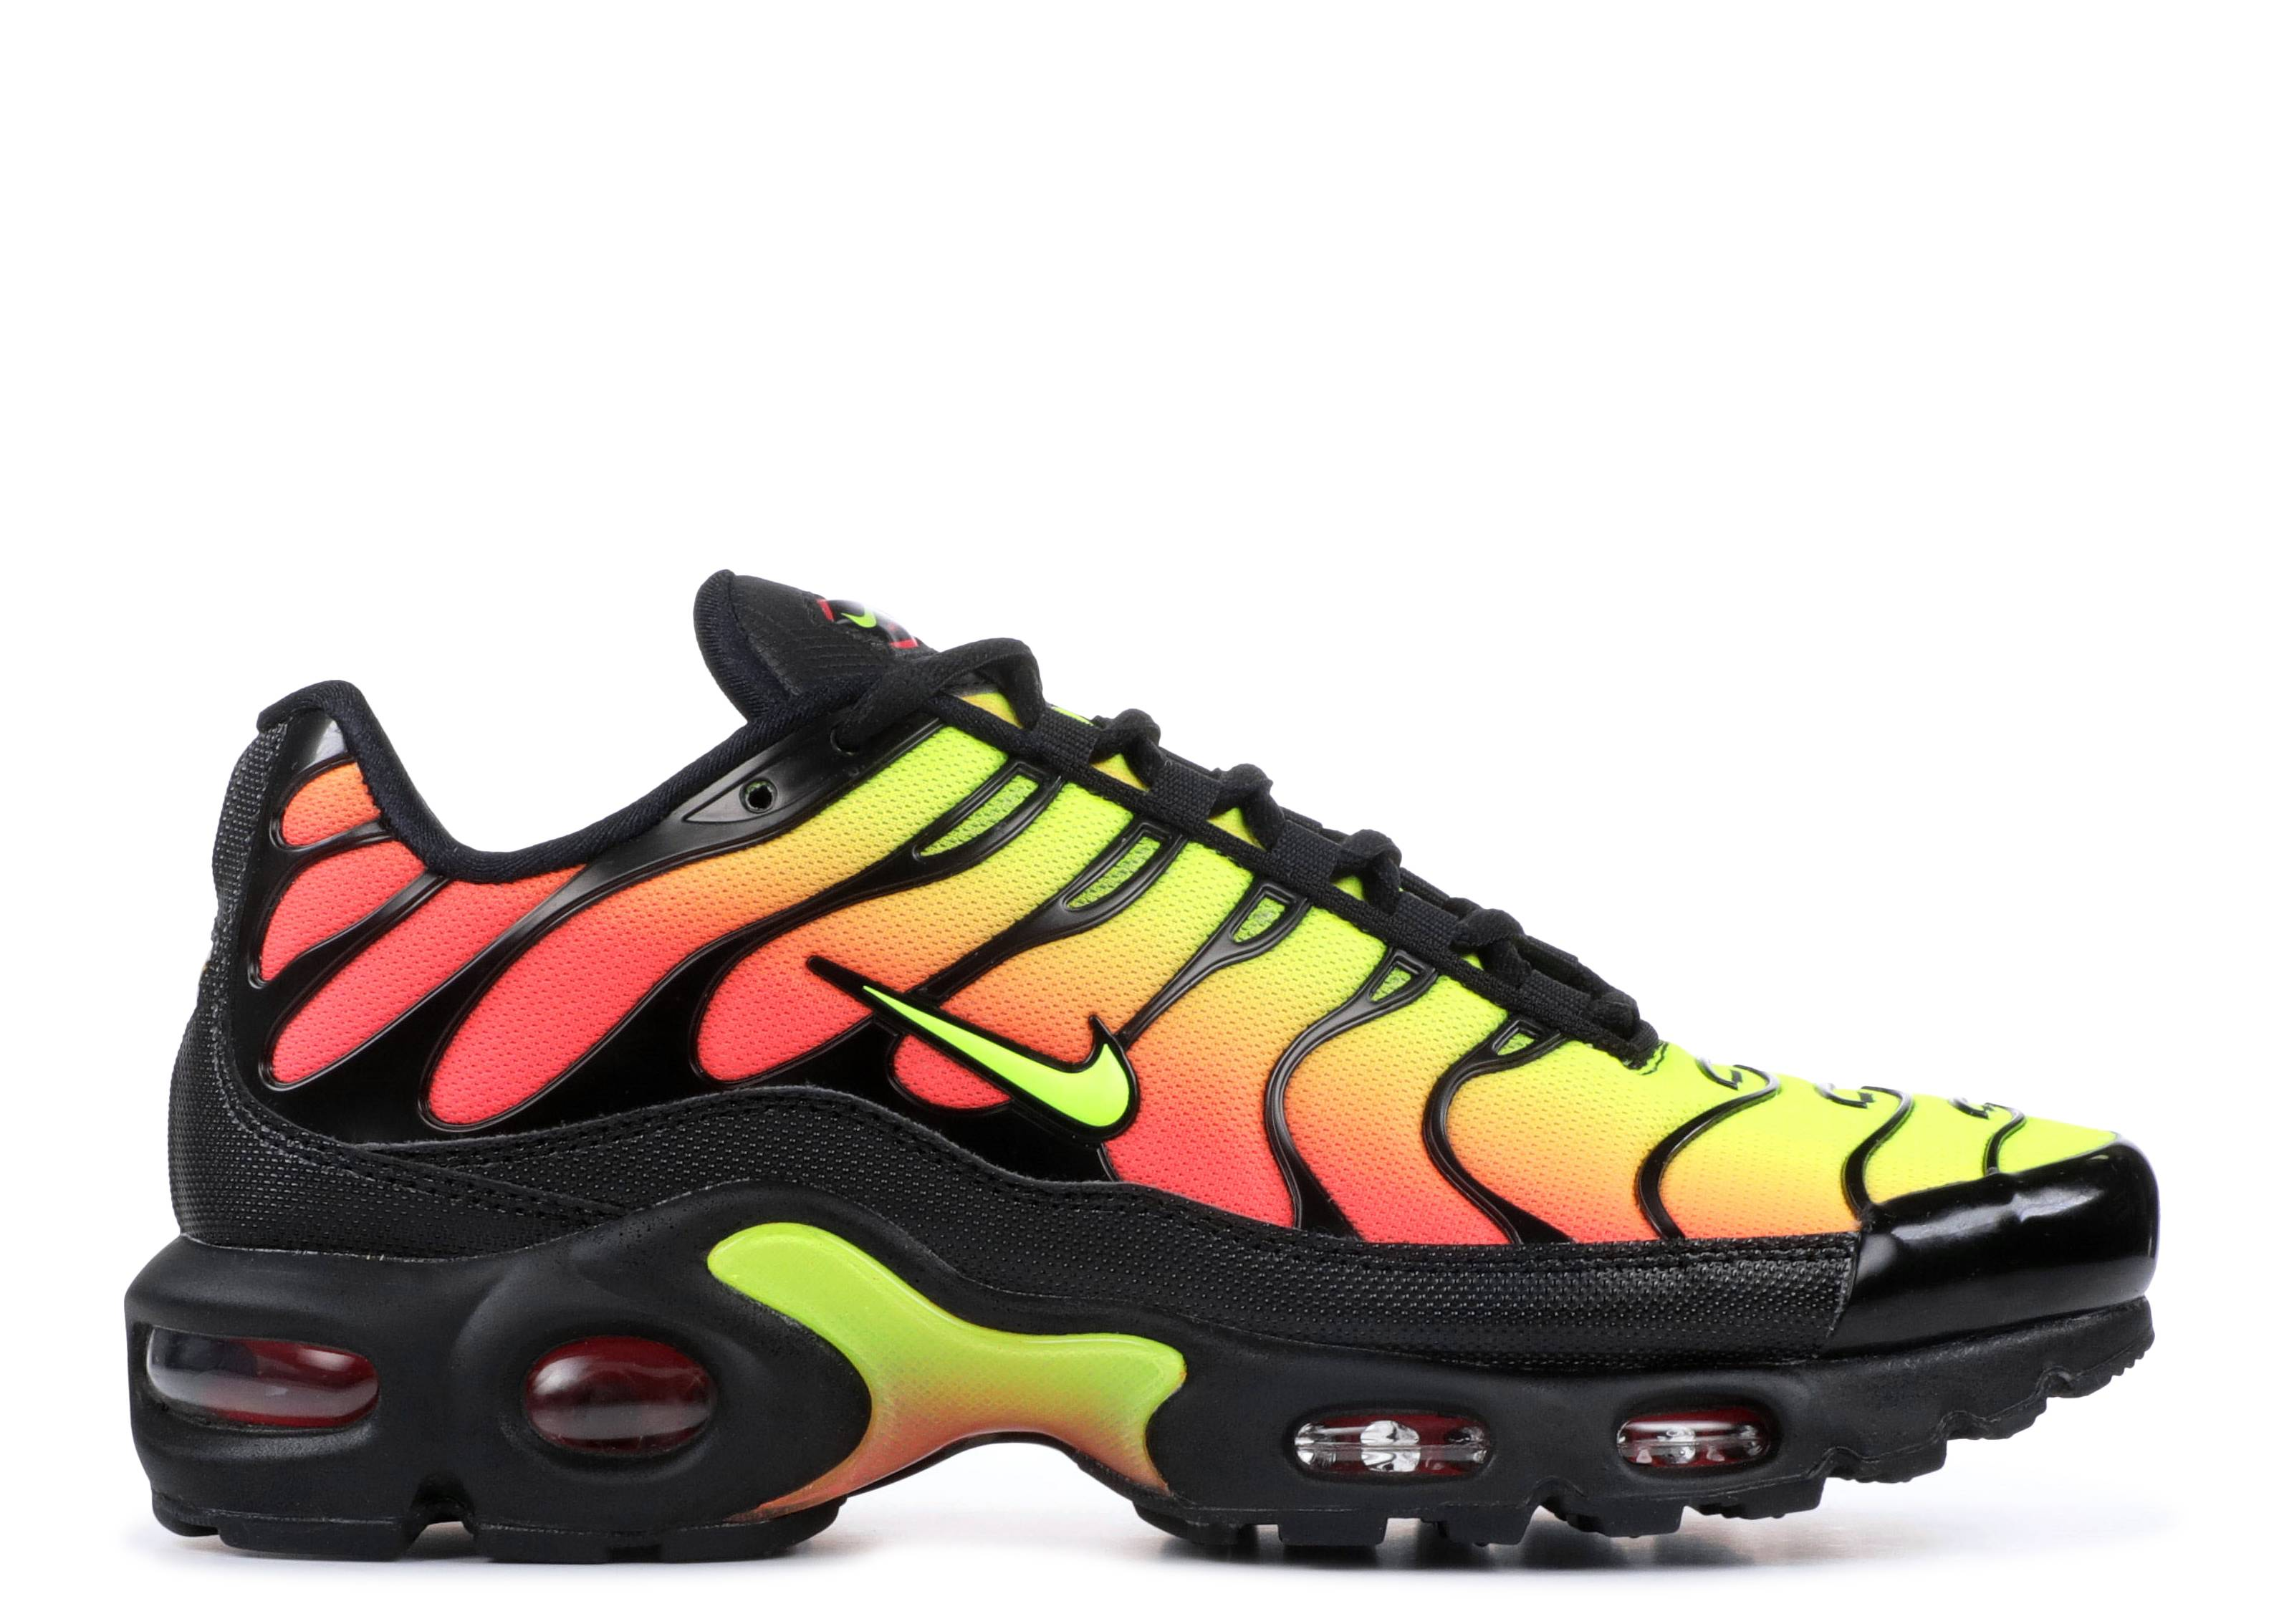 new concept 13a33 f6837 WMNS AIR MAX PLUS TN SE - Nike - aq9979 001 - black/volt ...